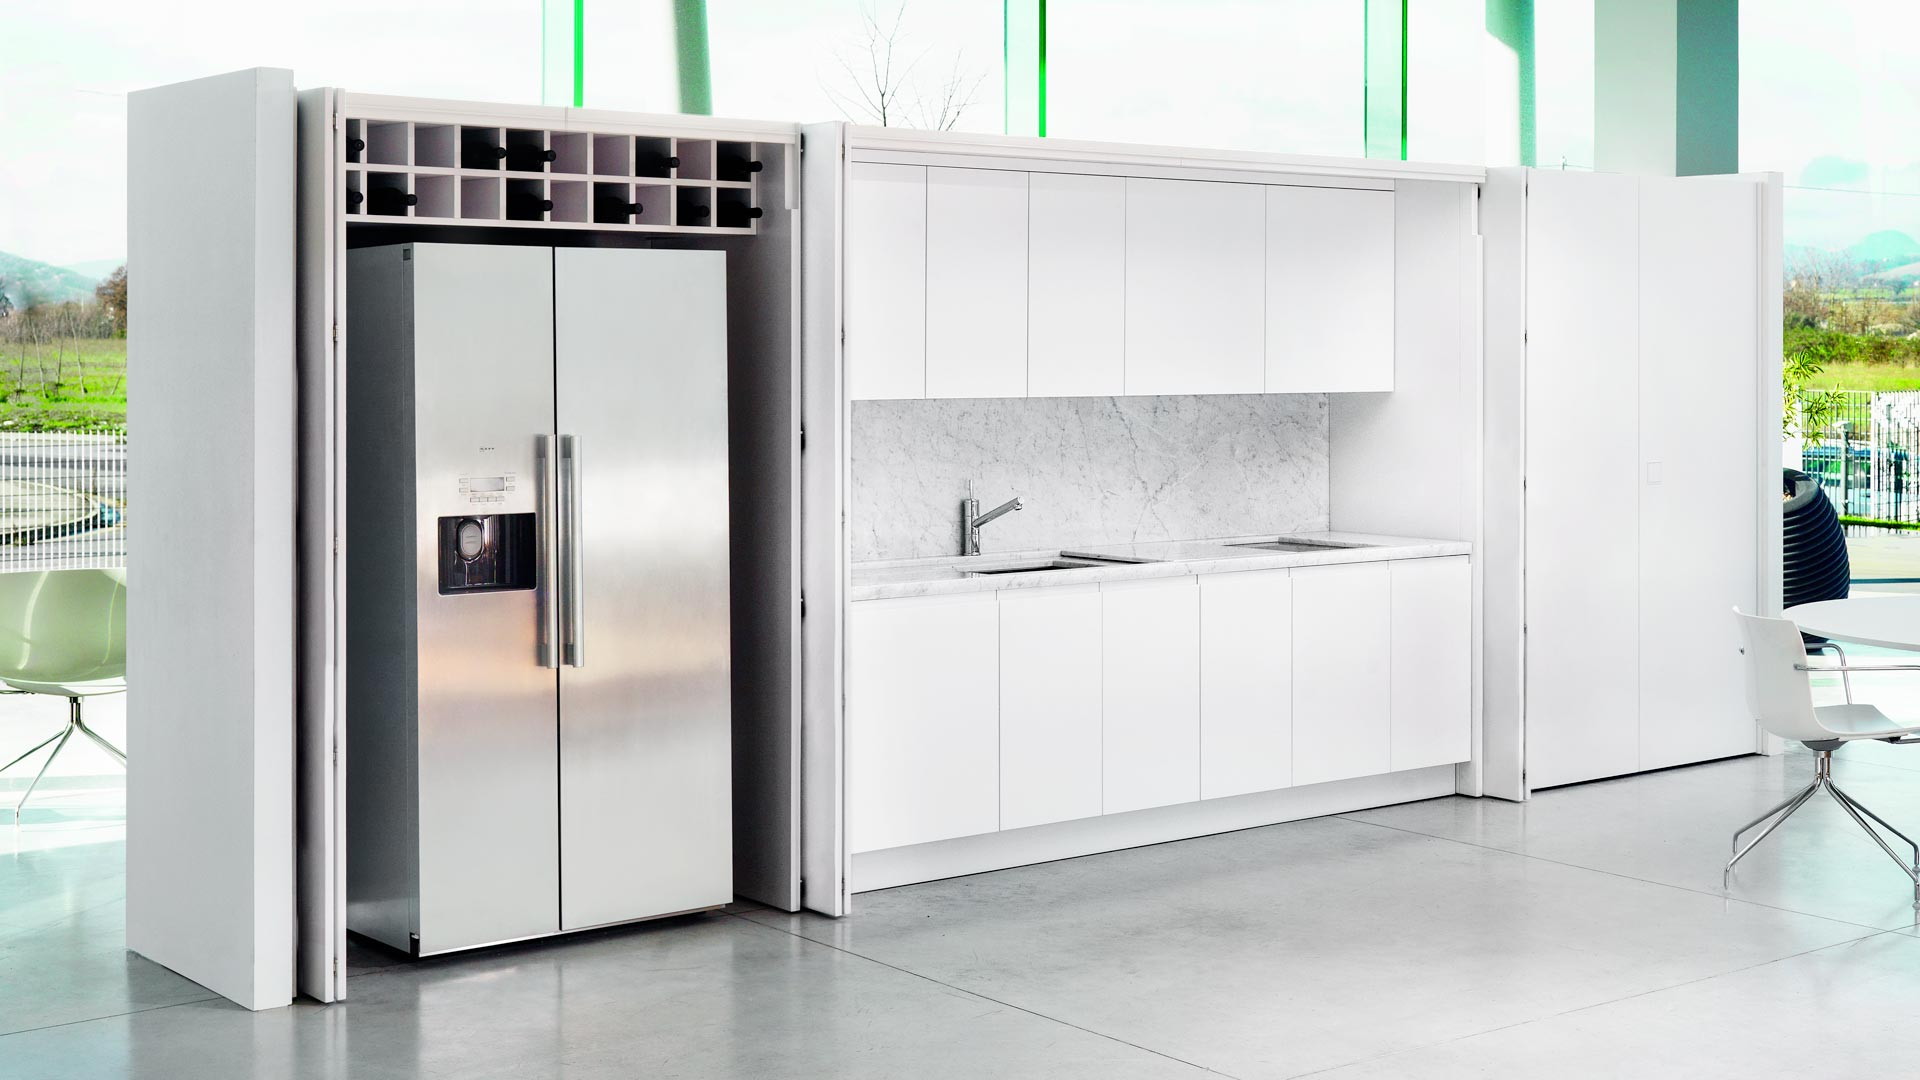 Cucina armadio freestanding for Cucina in armadio